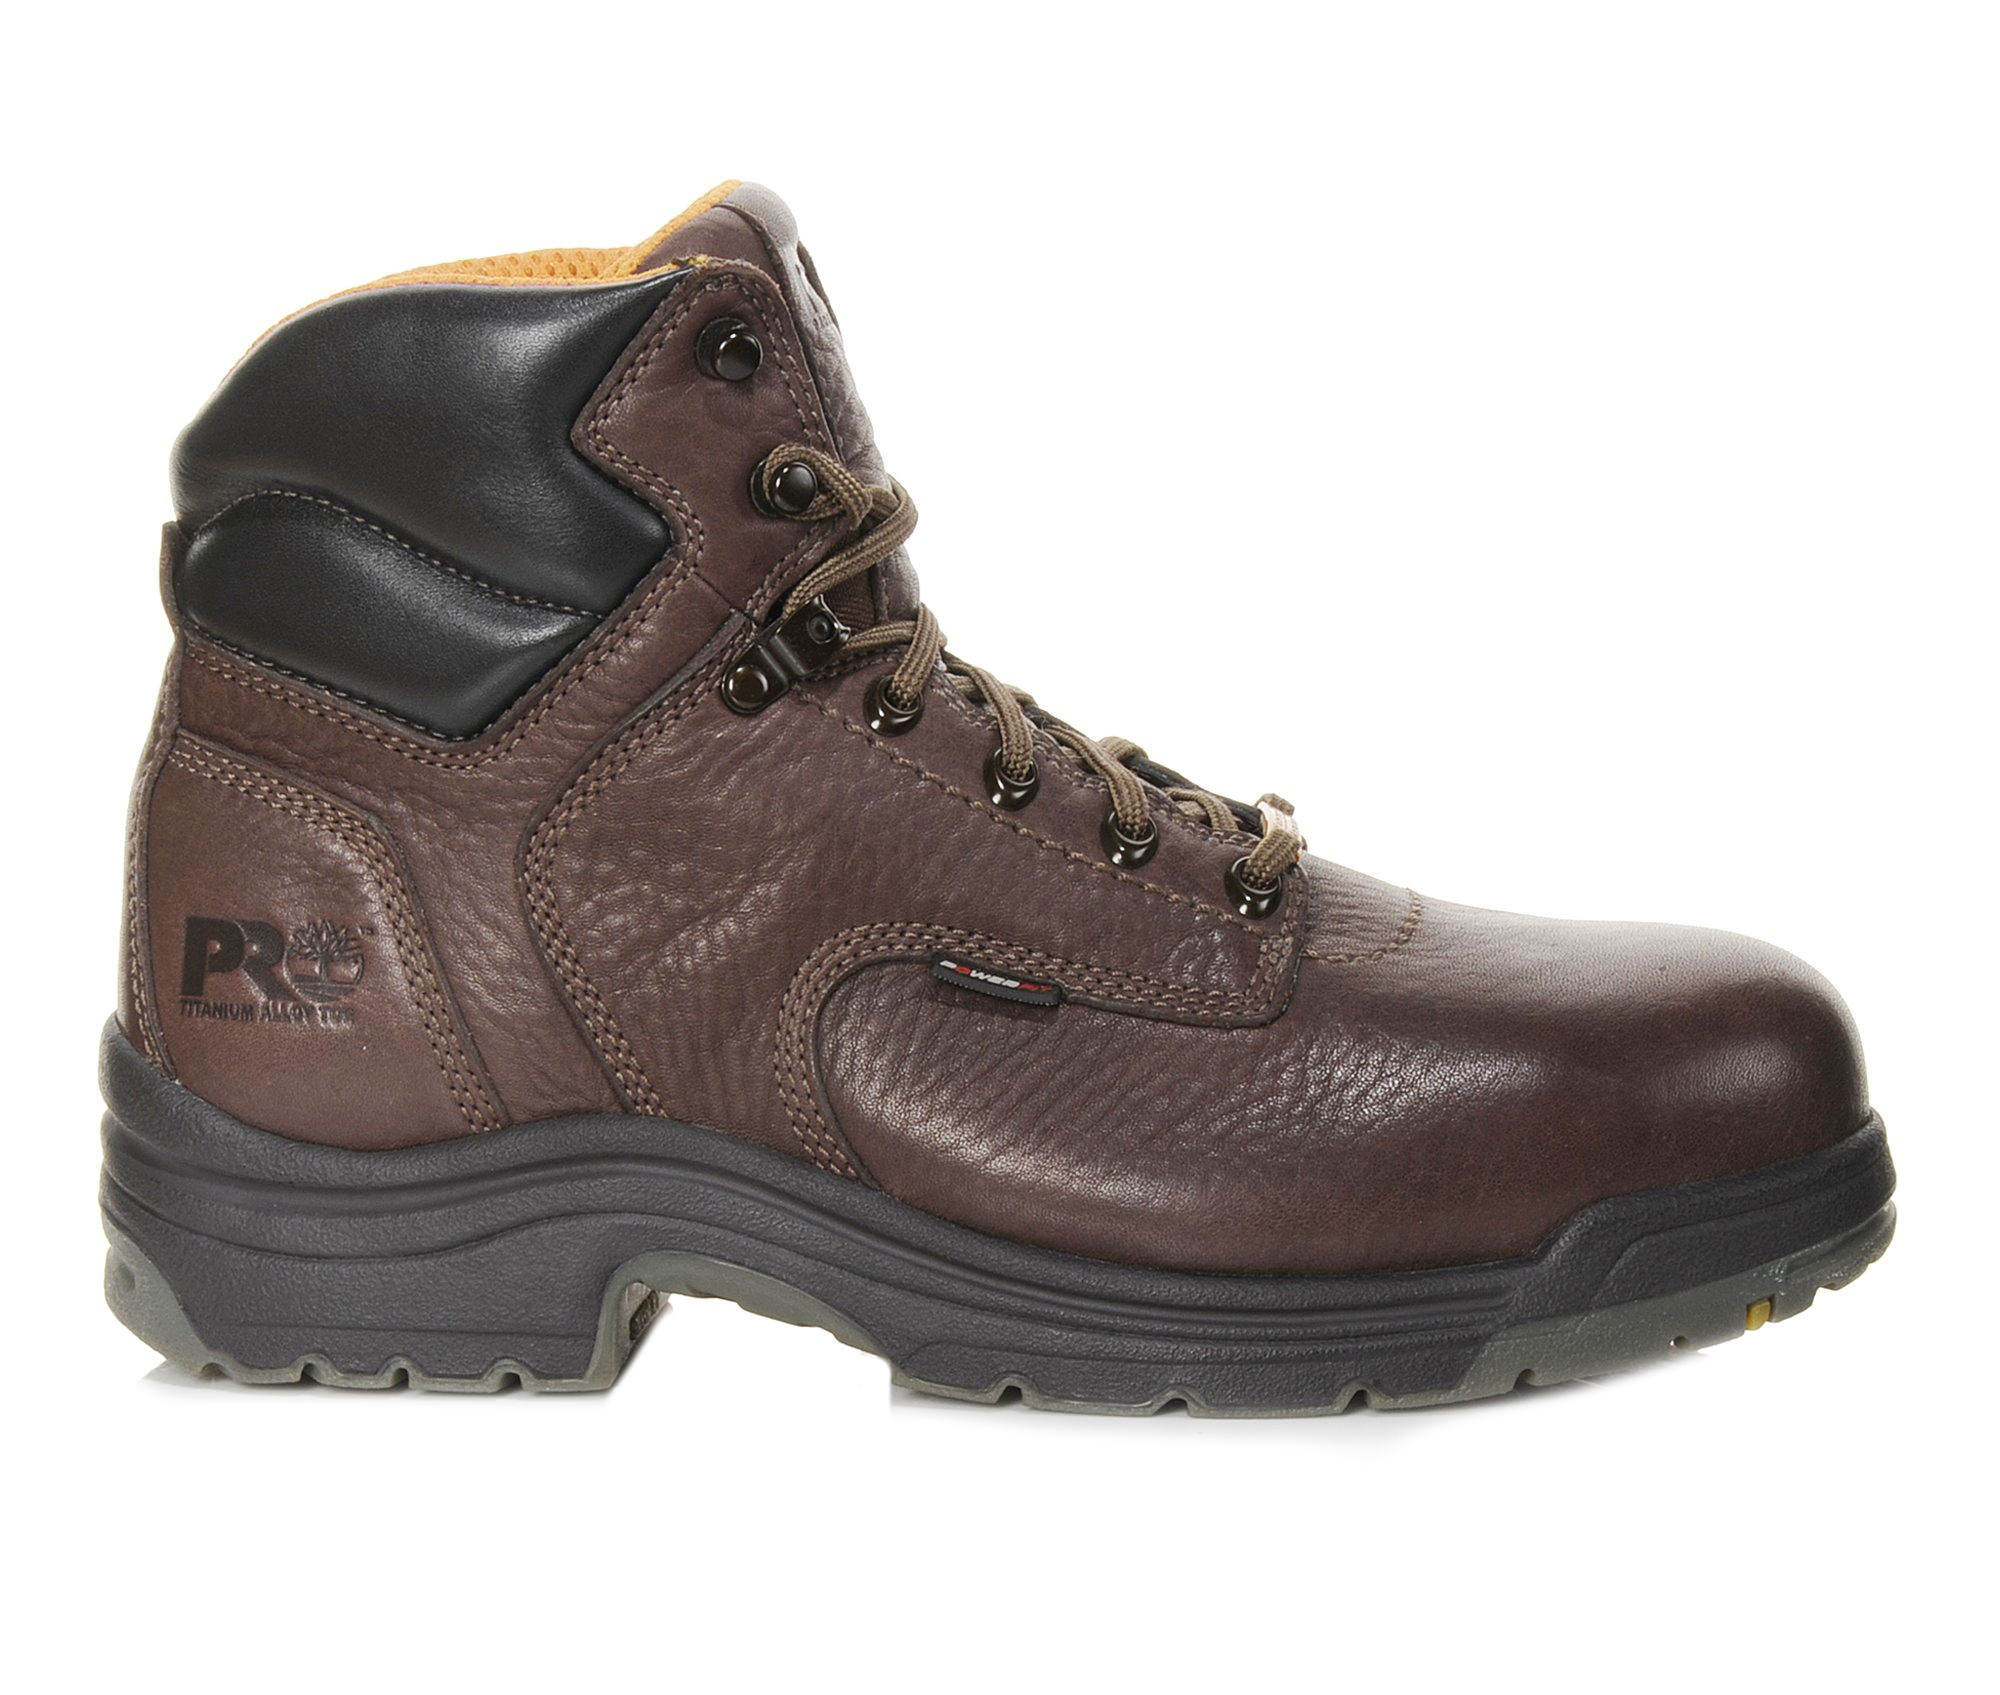 Timberland Pro Titan 6in 26063 Alloy Toe Men's Boots (Brown Leather)